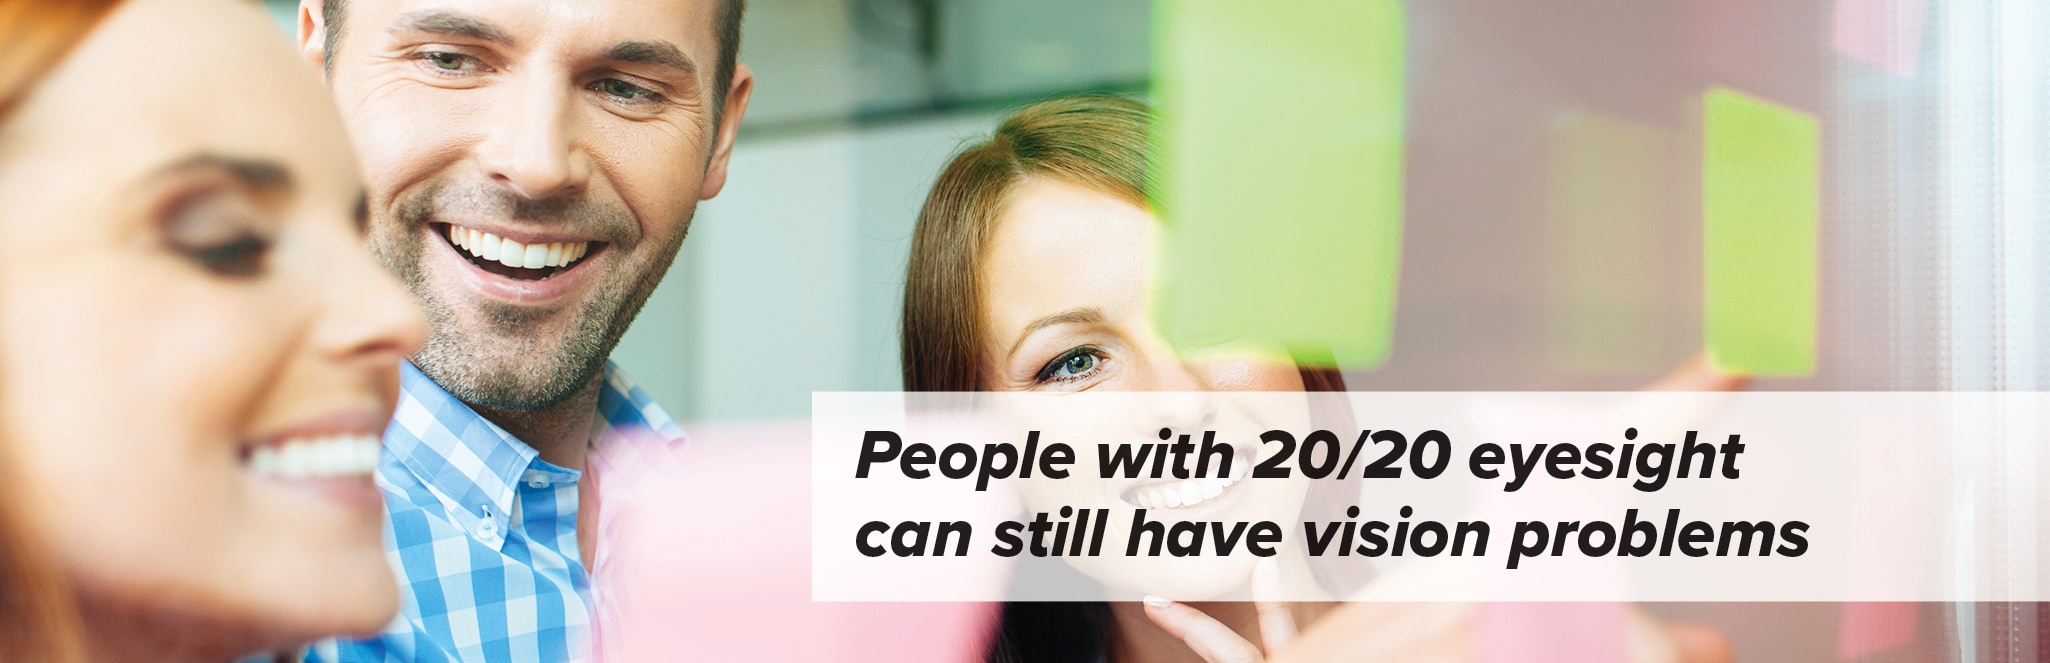 People-with-20-20